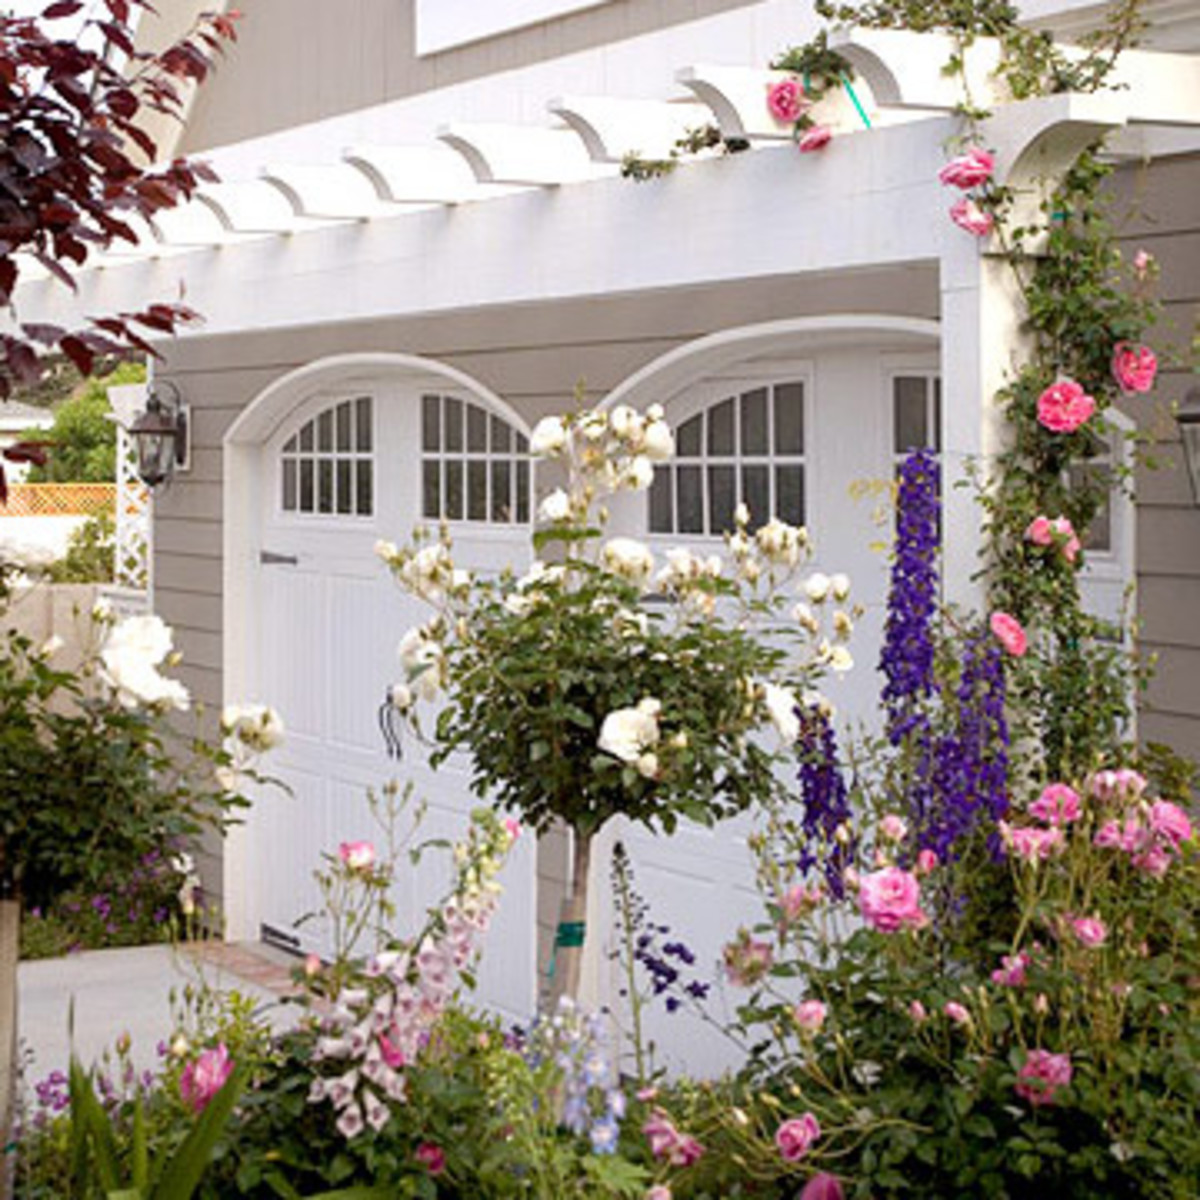 classic Nantucket garage with the pergola and roses above the curved garage doors